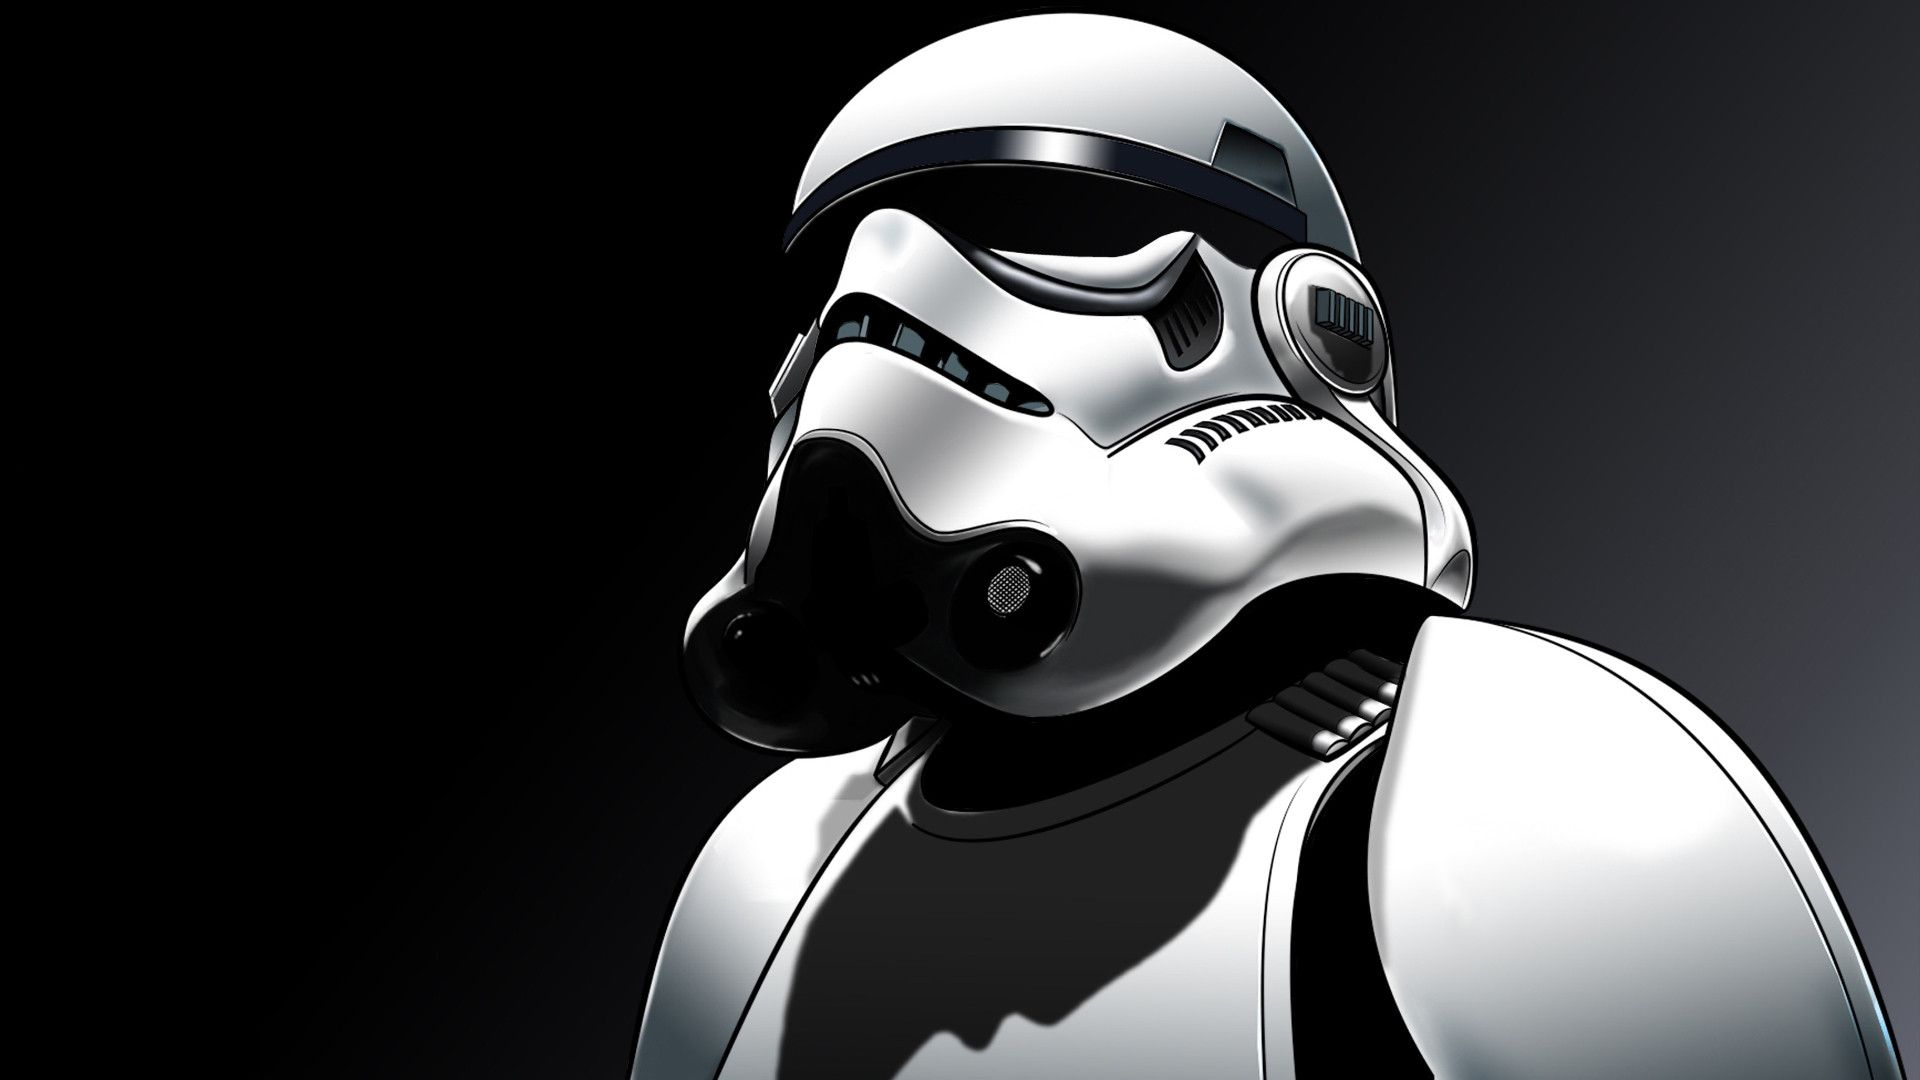 WallpapersWide Star Wars Wallpapers For IPhone And IPad 1920x1080